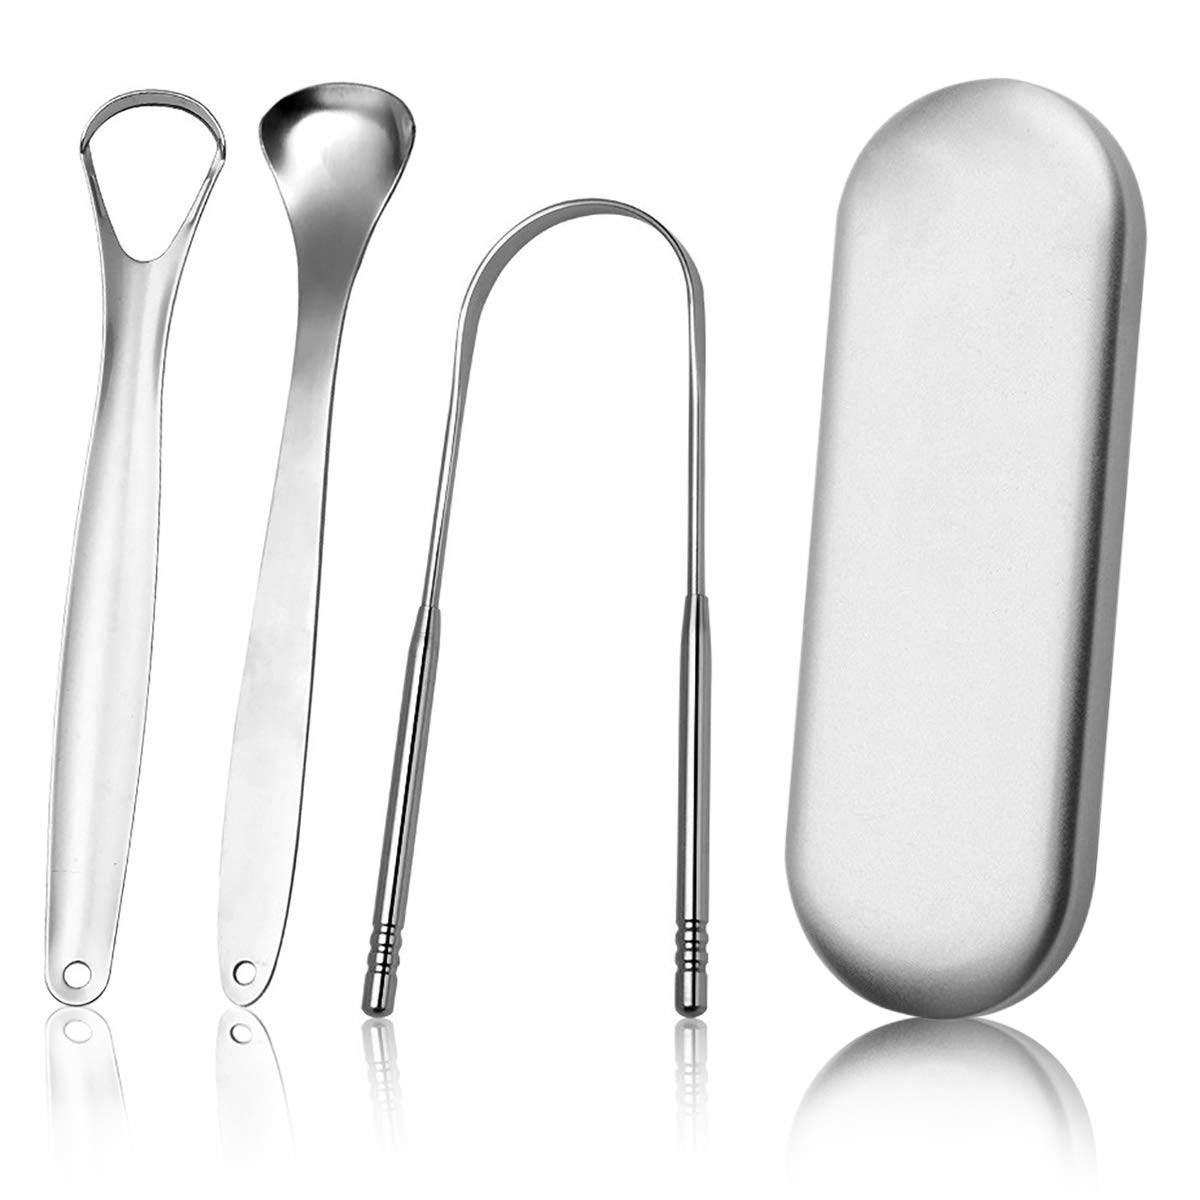 STfantasy Tongue Cleaner Tongue Scraper Tongue Brush Stainless Steel for Adults Dental Kit, Set of 3 with case